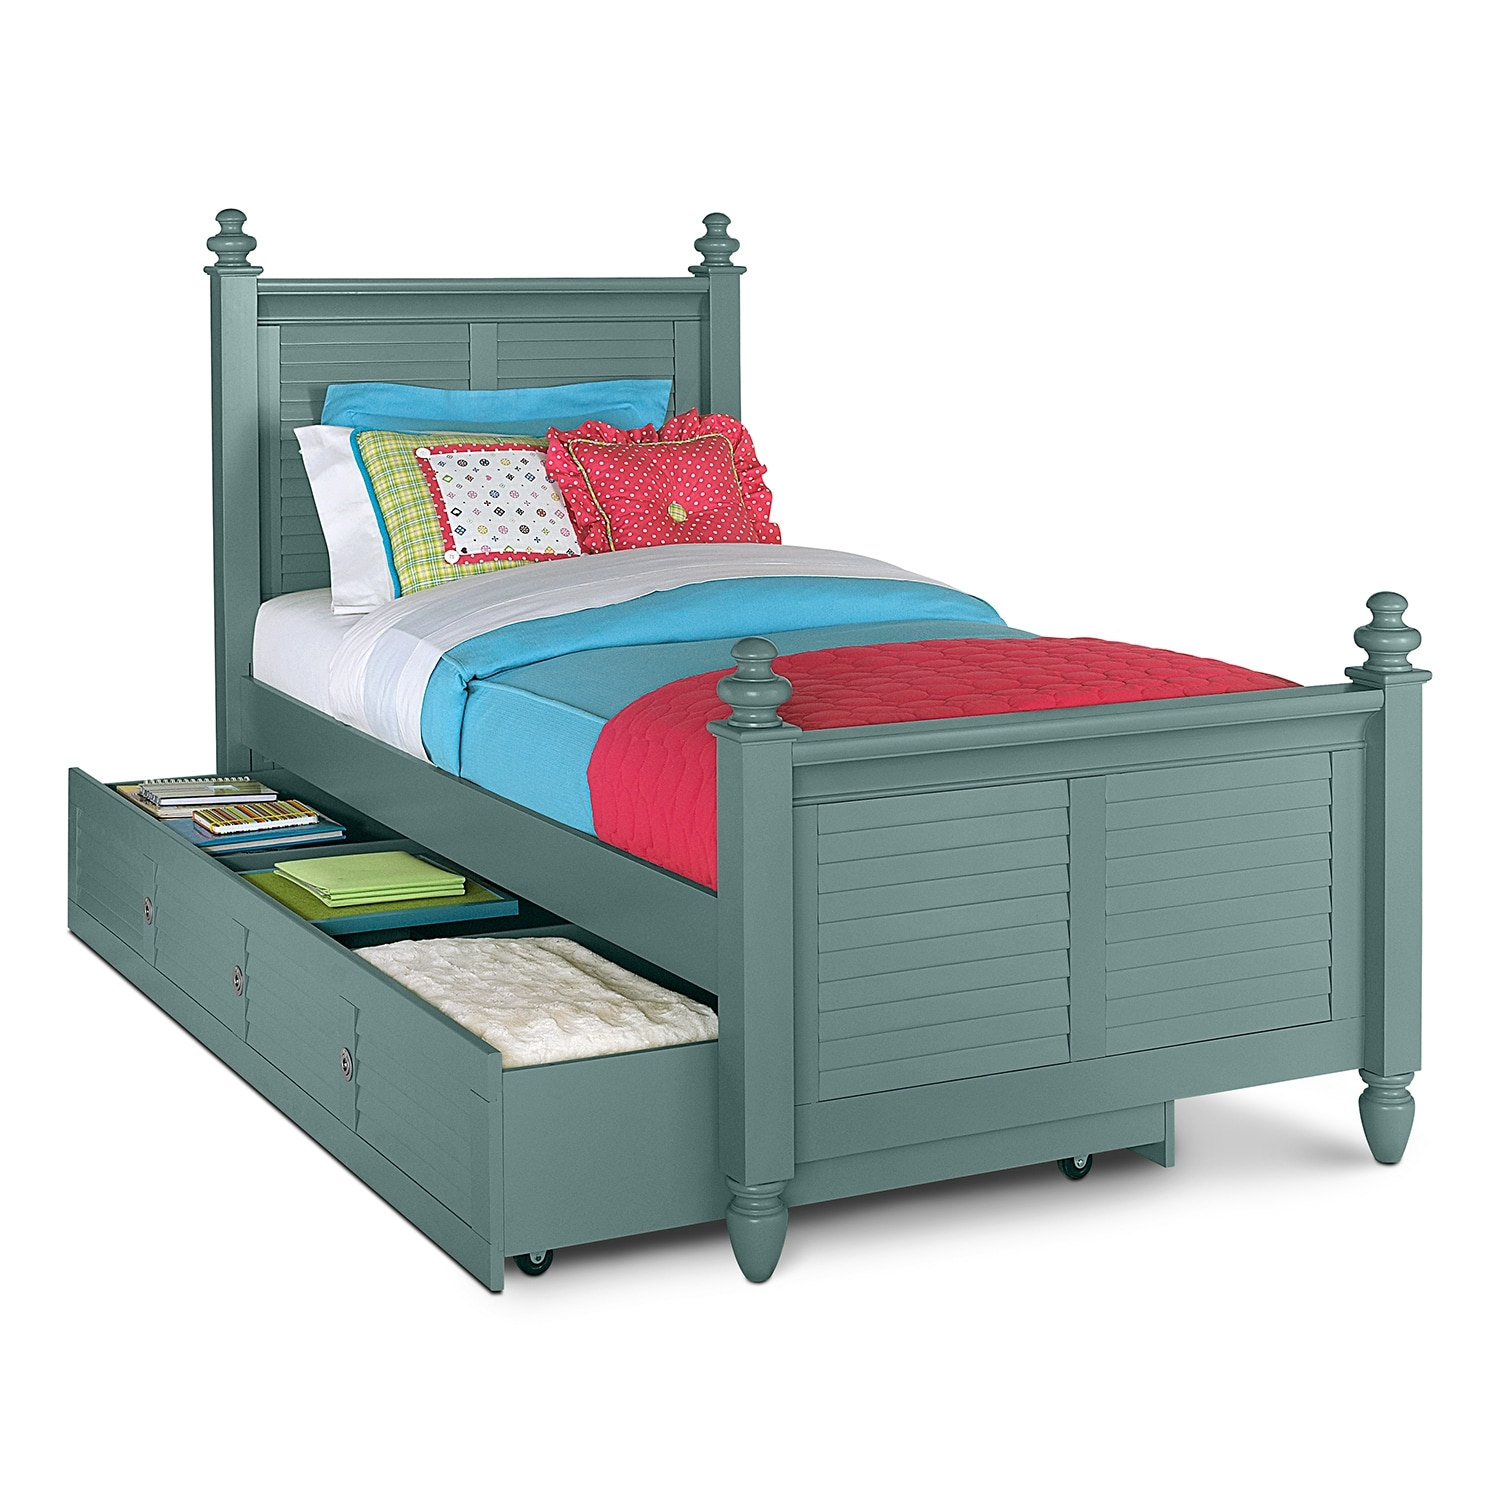 Seaside Full Bed With Trundle  Blue